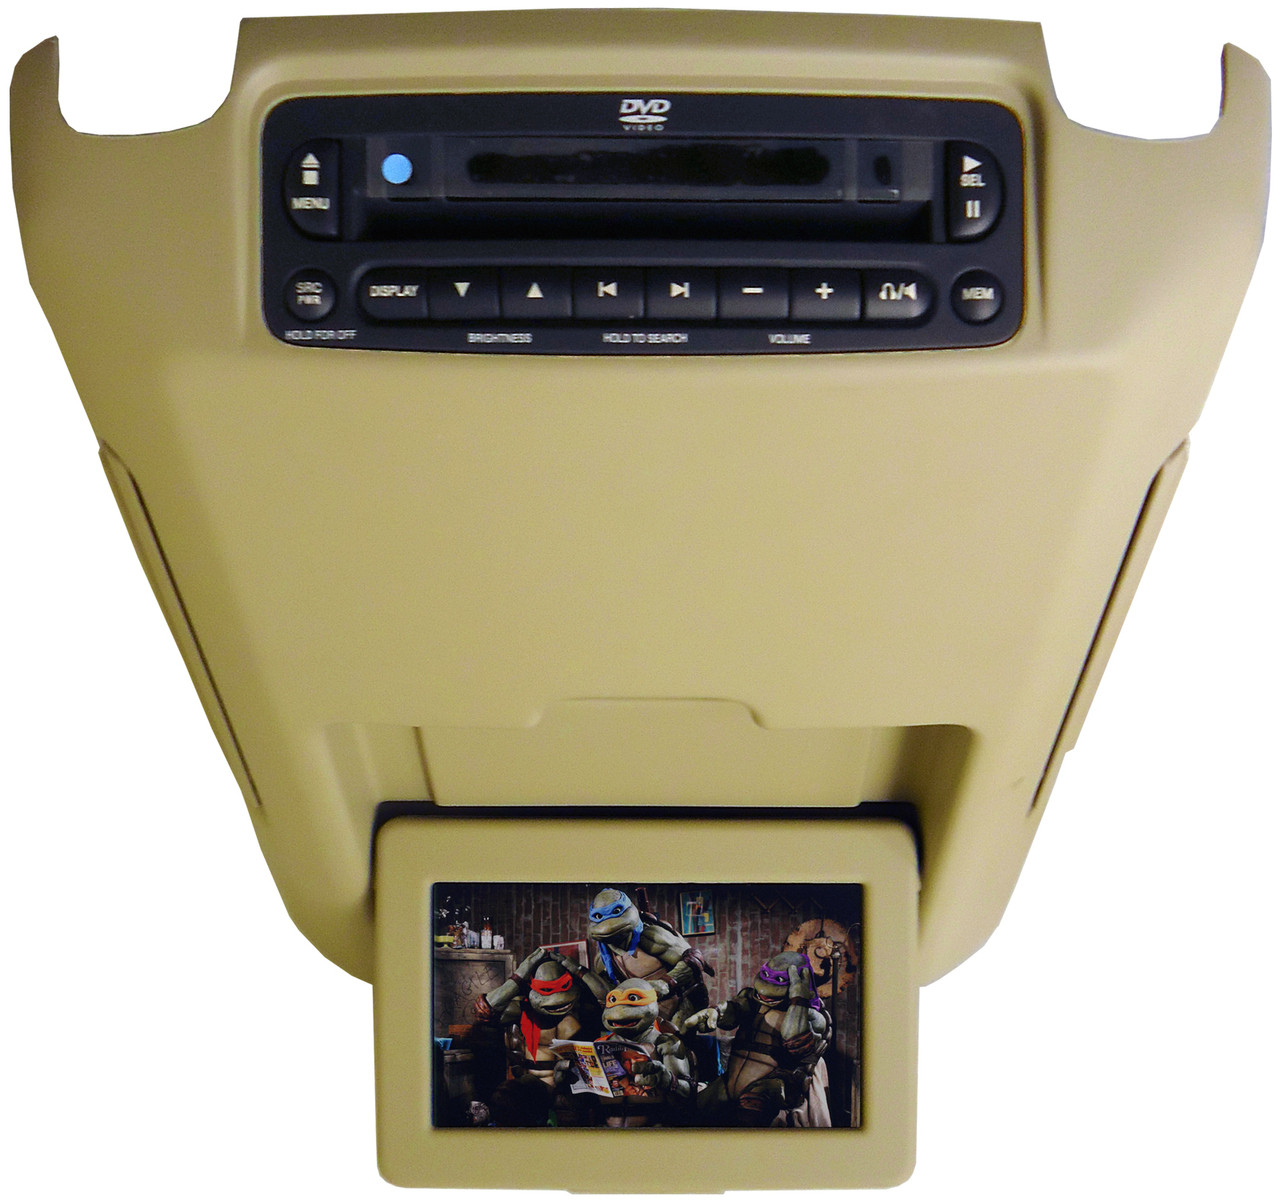 Deluxe Motorcoach in addition Car Dvd Stereo Video Player For Toyota I2310321 further 1101030 Replacing A Vcr From A 2001 Expy With A Dvd besides 267358 F250 4 Dr Four Door Bronco Not Centurion Not Excursion 460 At Ac Ps Pb   Cruise together with Dvd Player Ford Explorer. on excursion overhead dvd player